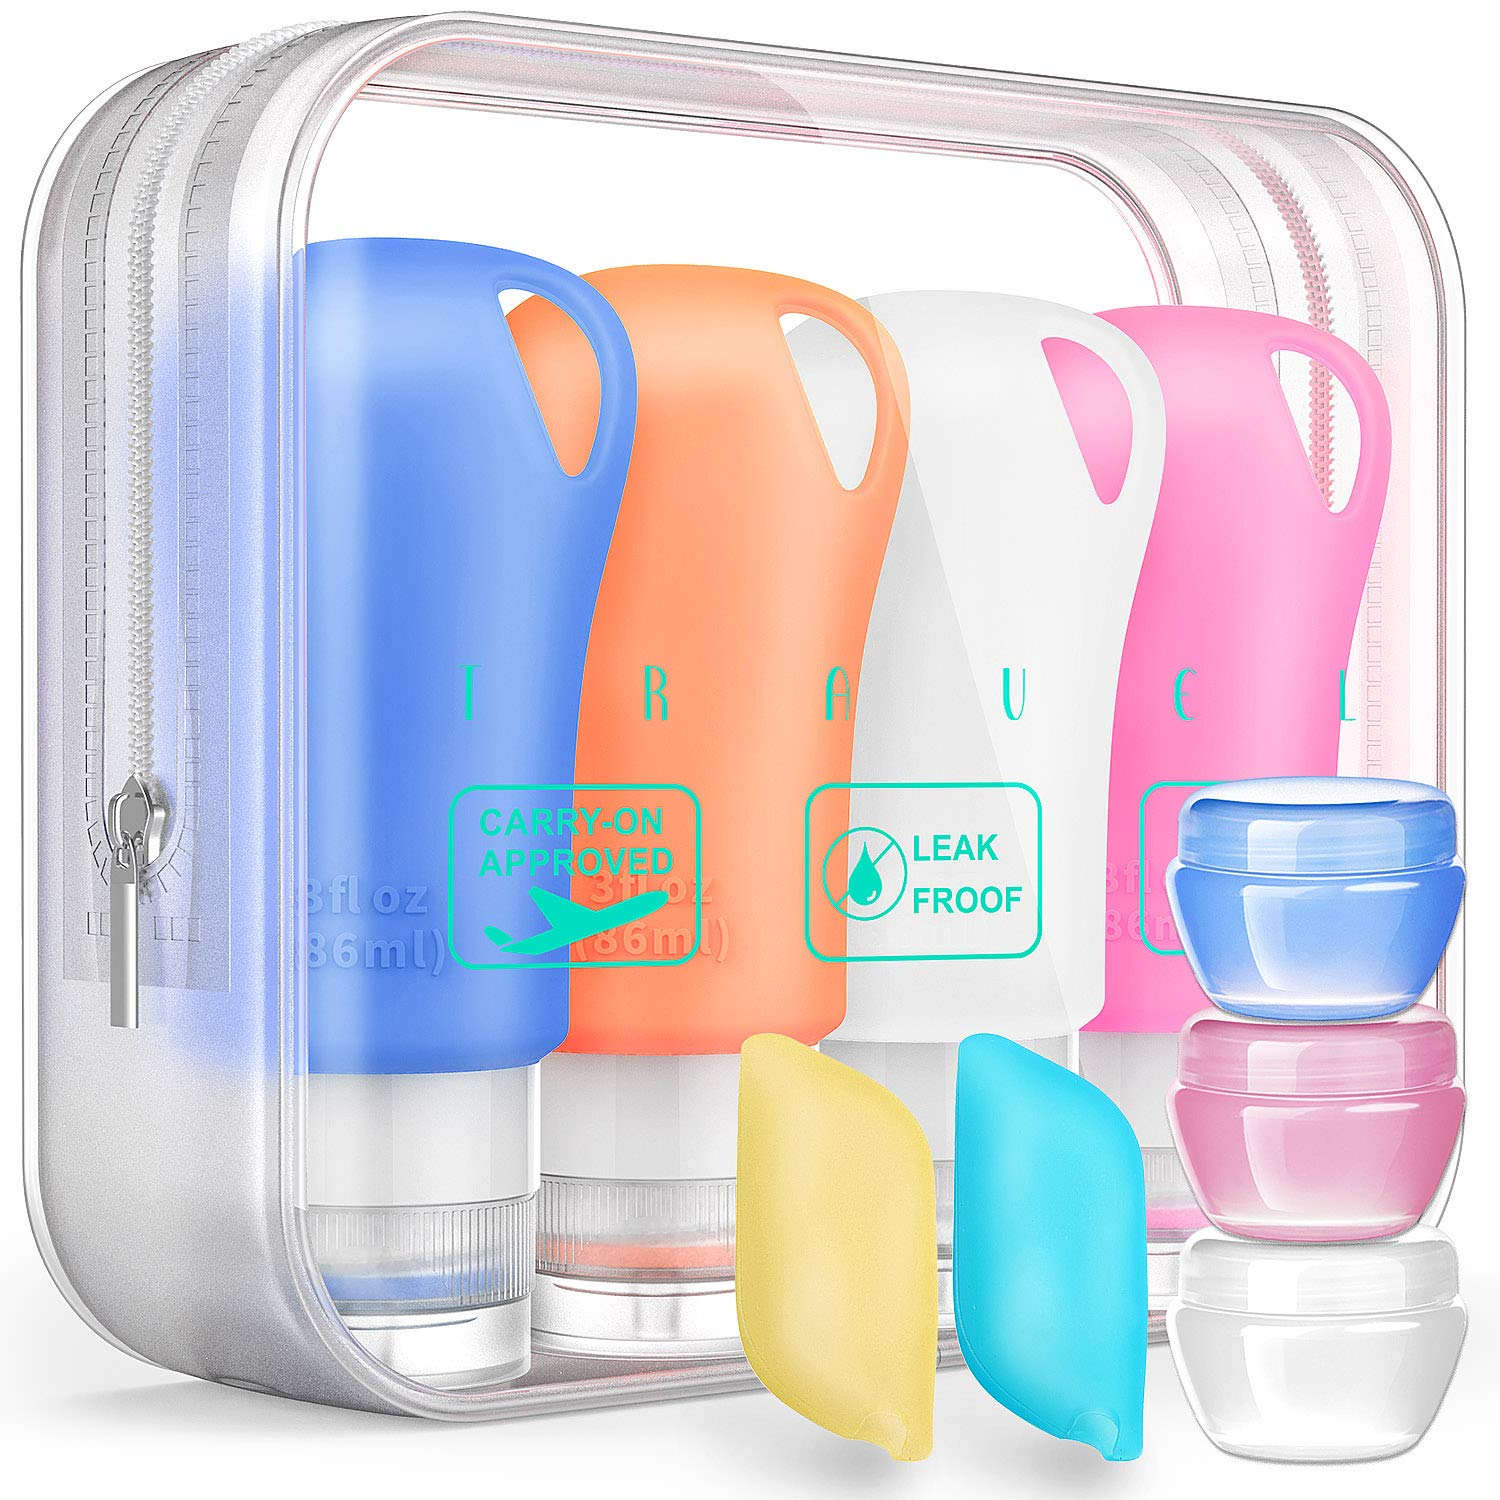 Silicone Travel Bottles, 3 oz TSA Approved Travel Size containers for toiletries, Leak proof Travel Shampoo And Conditioner Bottles With Toothbrush and Cream Jars